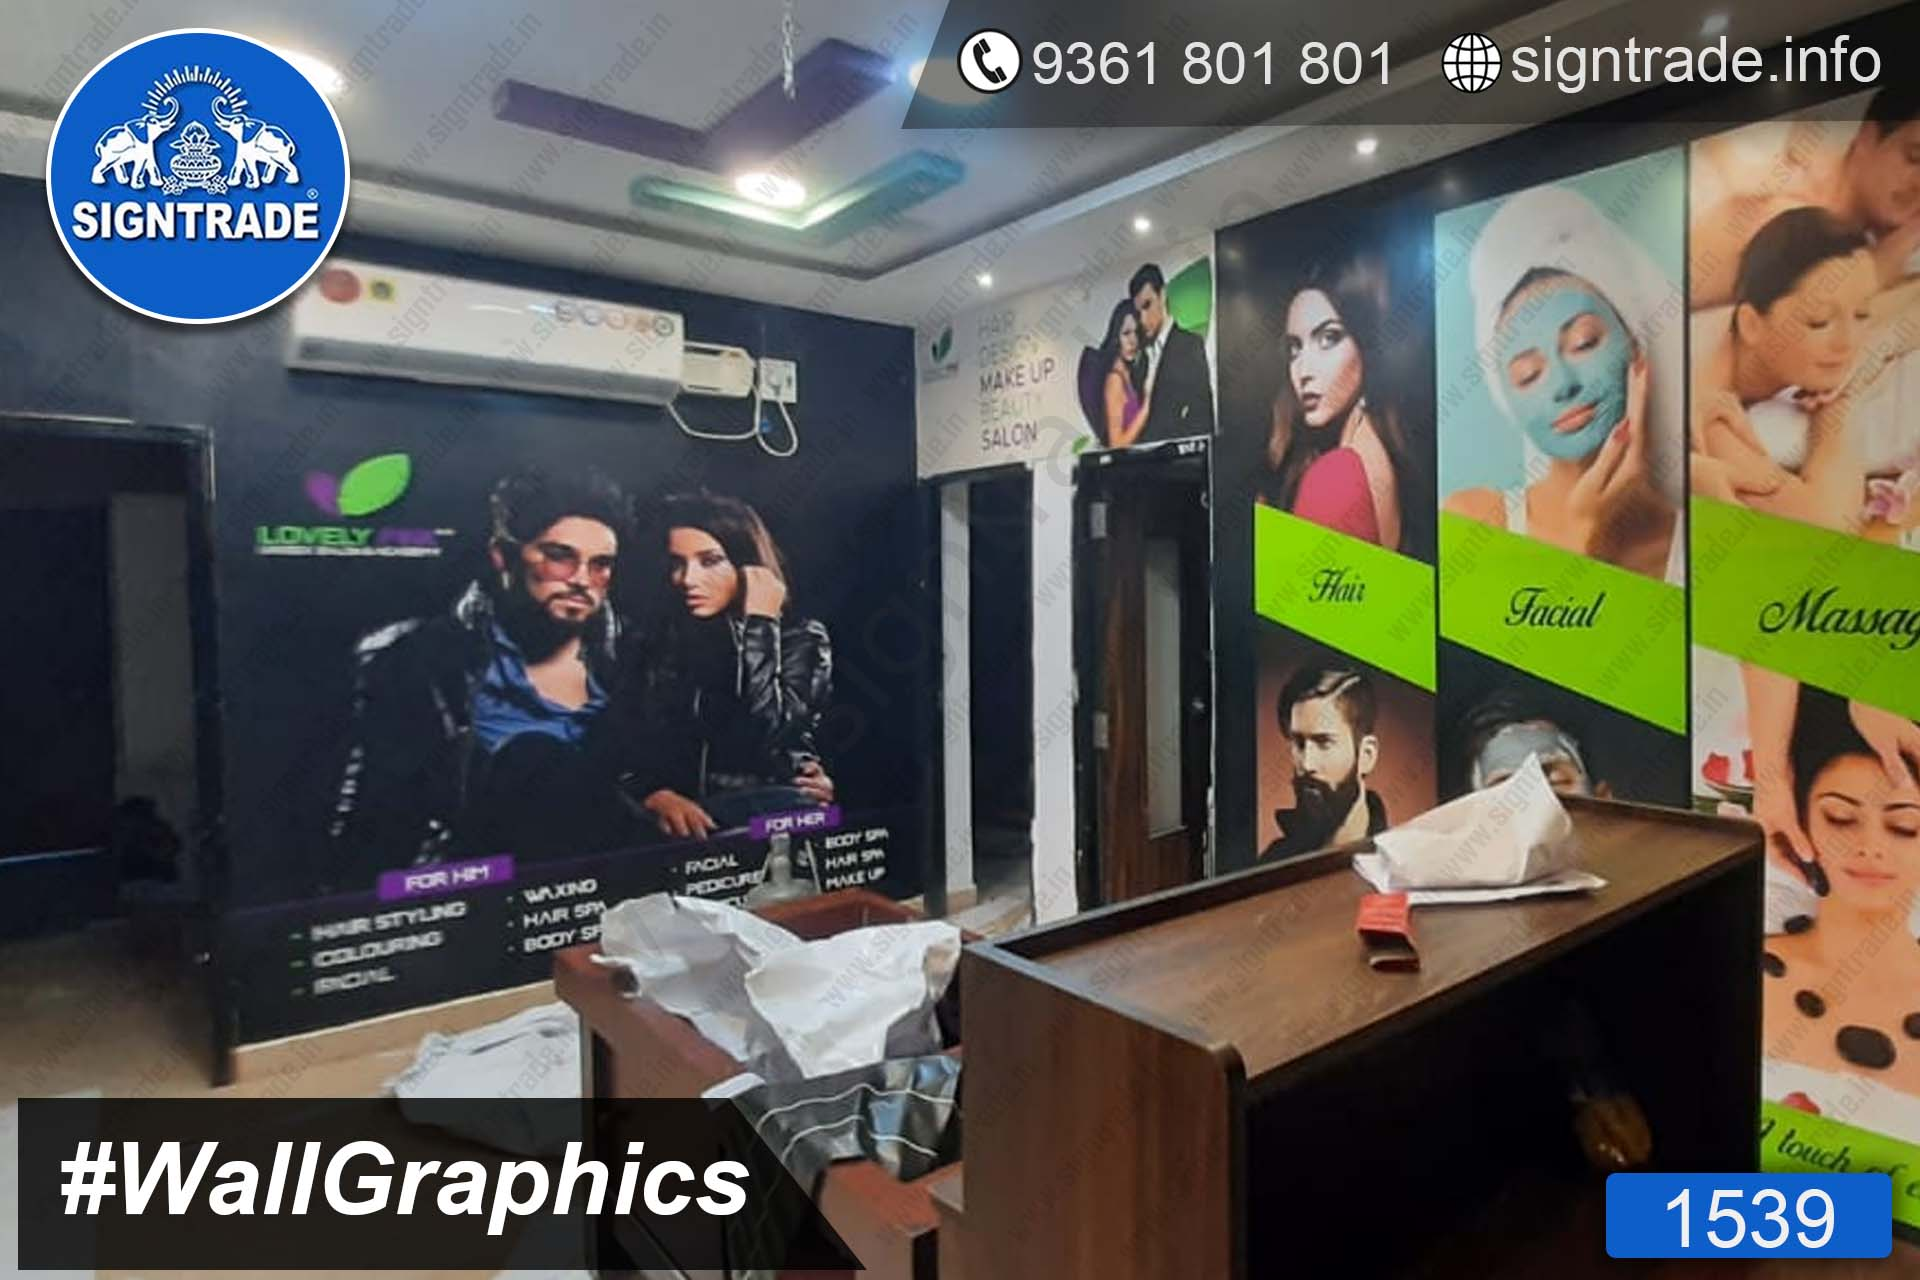 Lovely Pink Unisex Salon, Adyar, Chennai - SIGNTRADE - Wall Graphics - Vinyl Printing and Wraping Service in Chennai